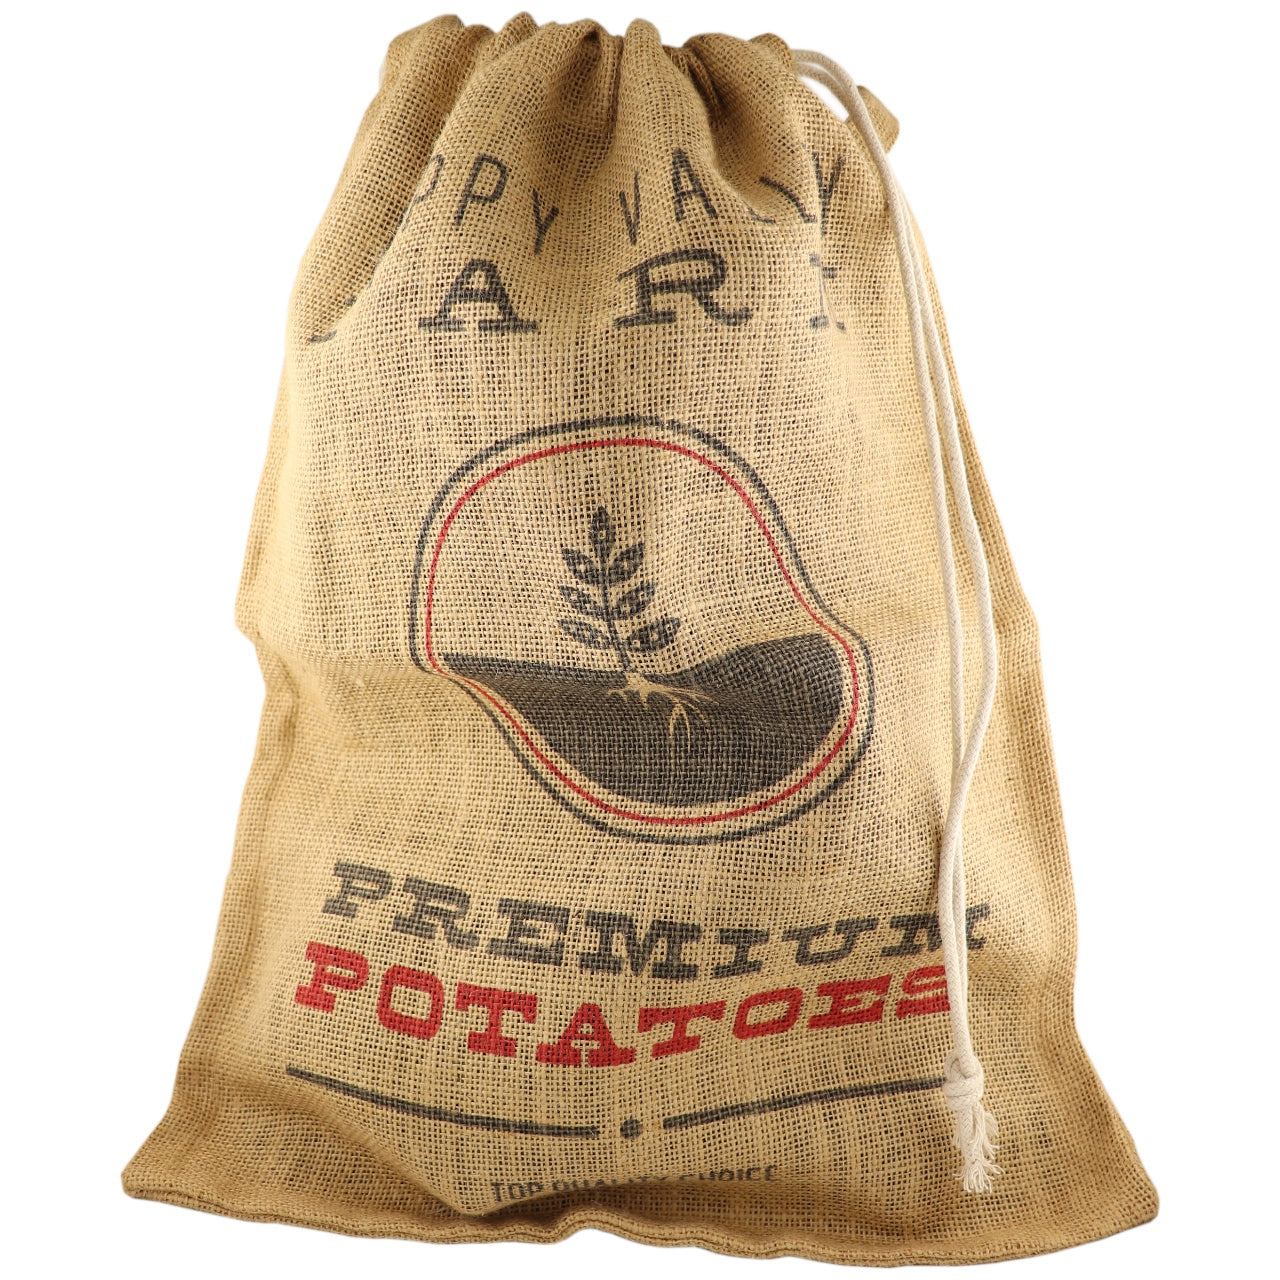 Retro Kitchen Potato Produce Sack